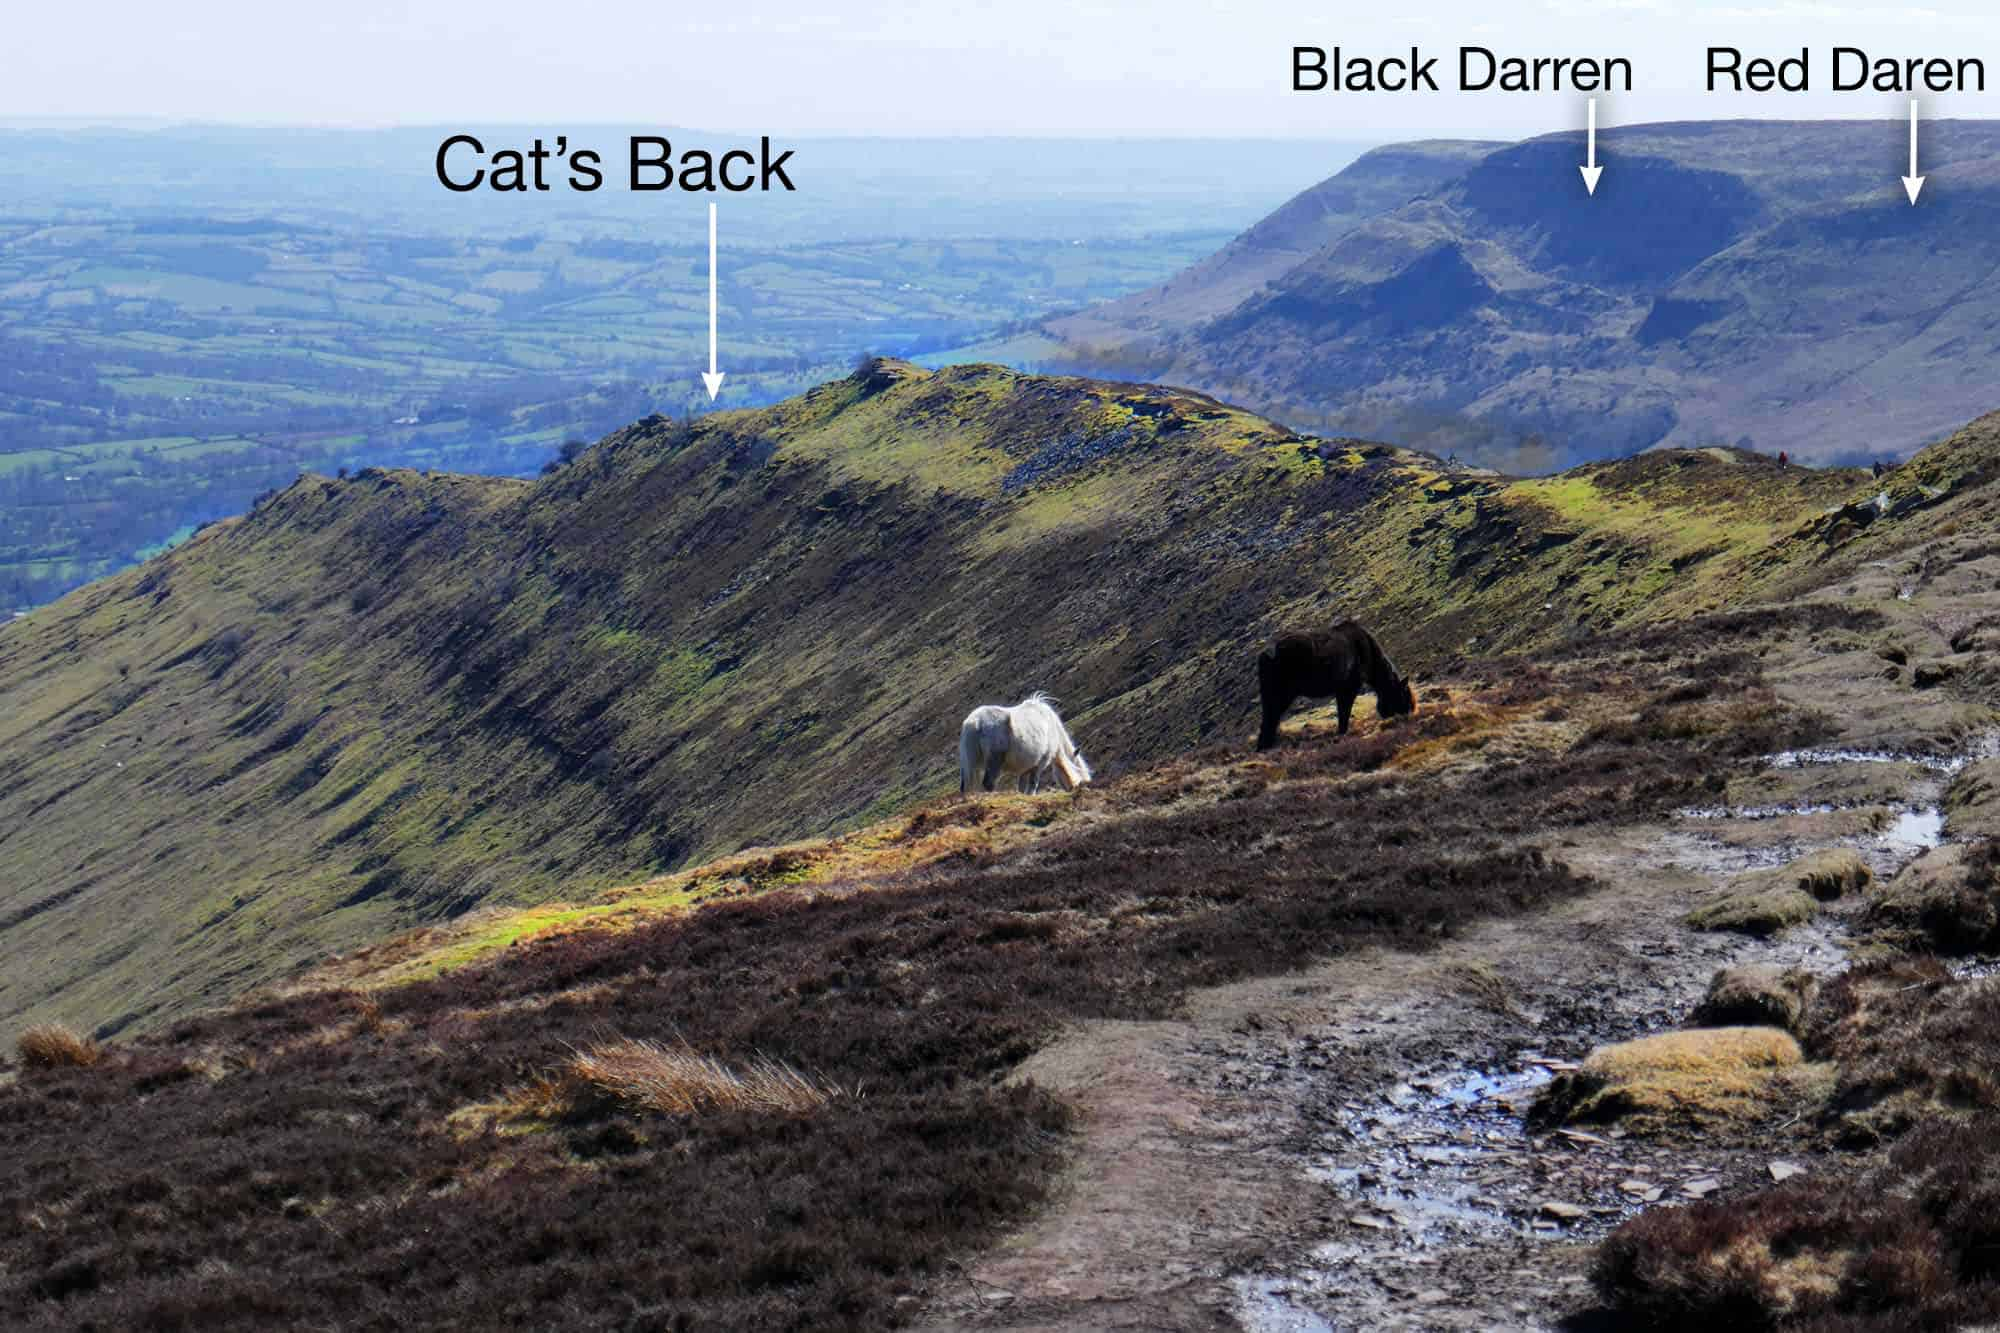 Cat's Back looking south with the Darrens